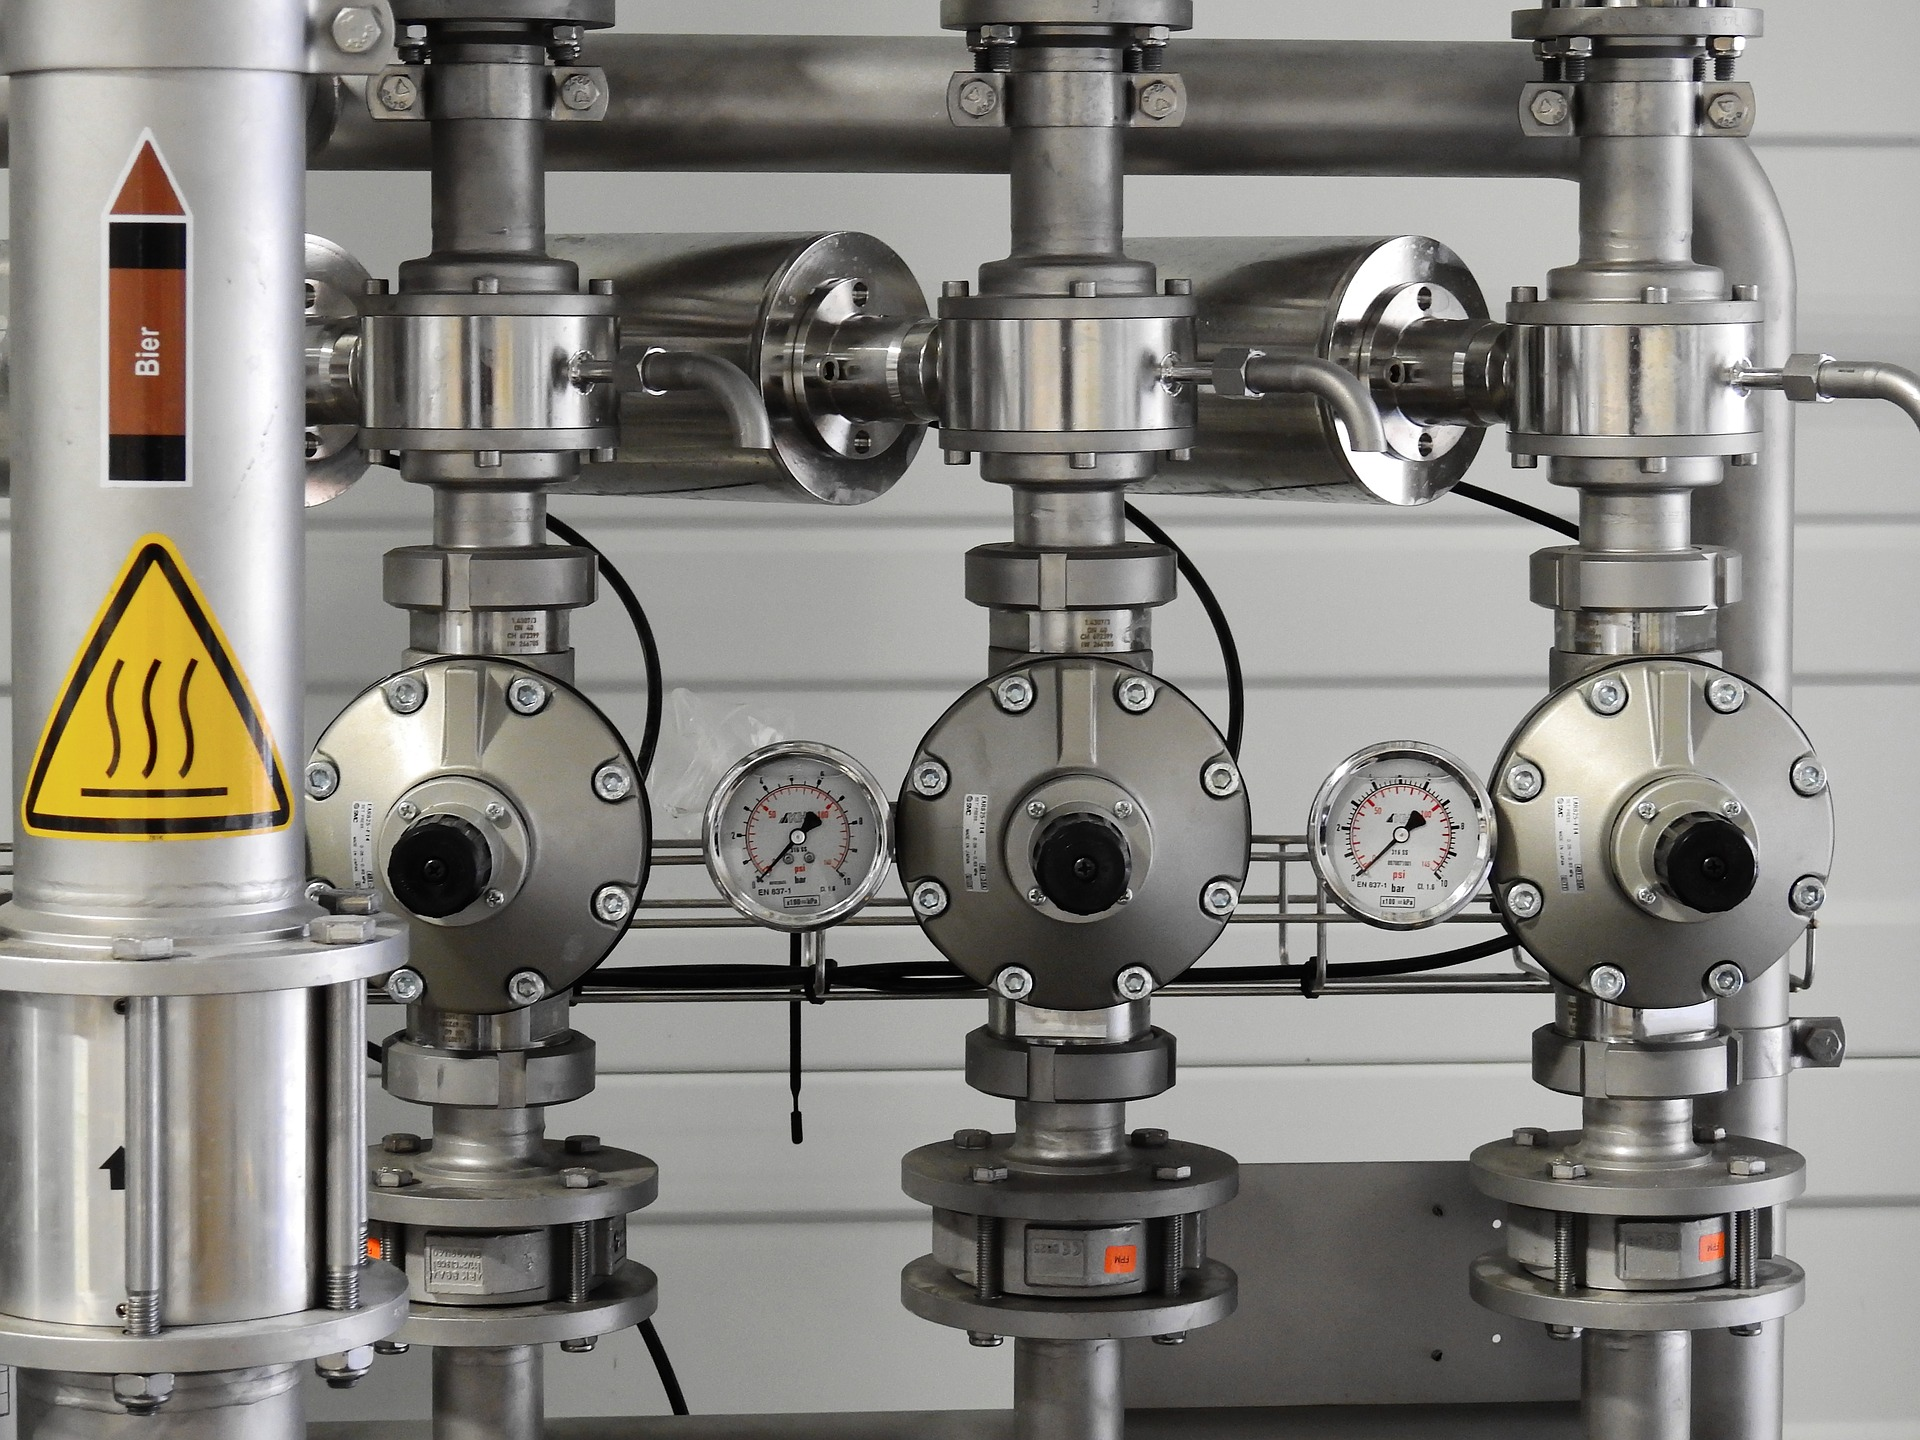 Commercial Plumbing pipes and gauges